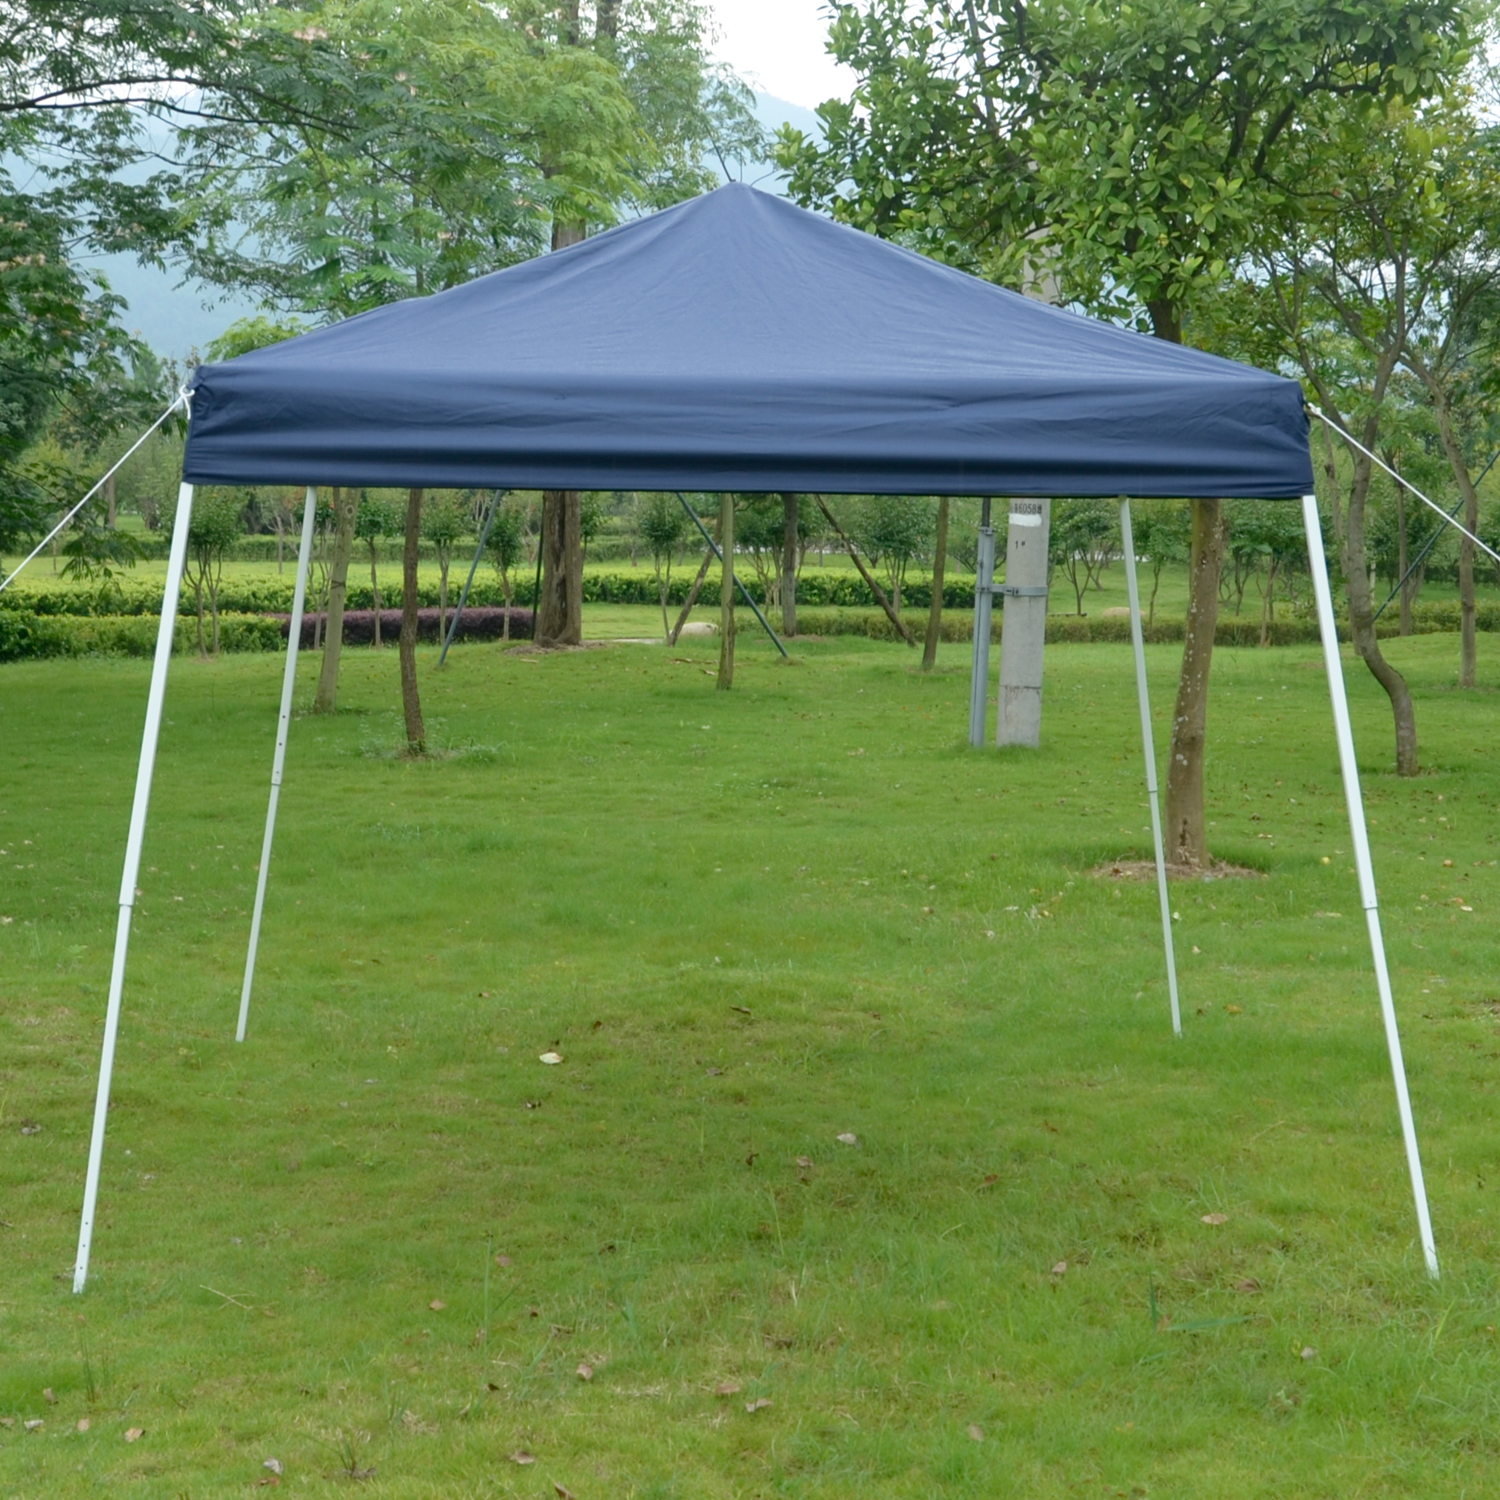 Image of CAD $84.99 Outsunny 10x10ft Easy Pop-up Canopy Party Tent Sunshade Shelter w/Slant Leg Blue / Slant Patio Garden Canada 25093578953